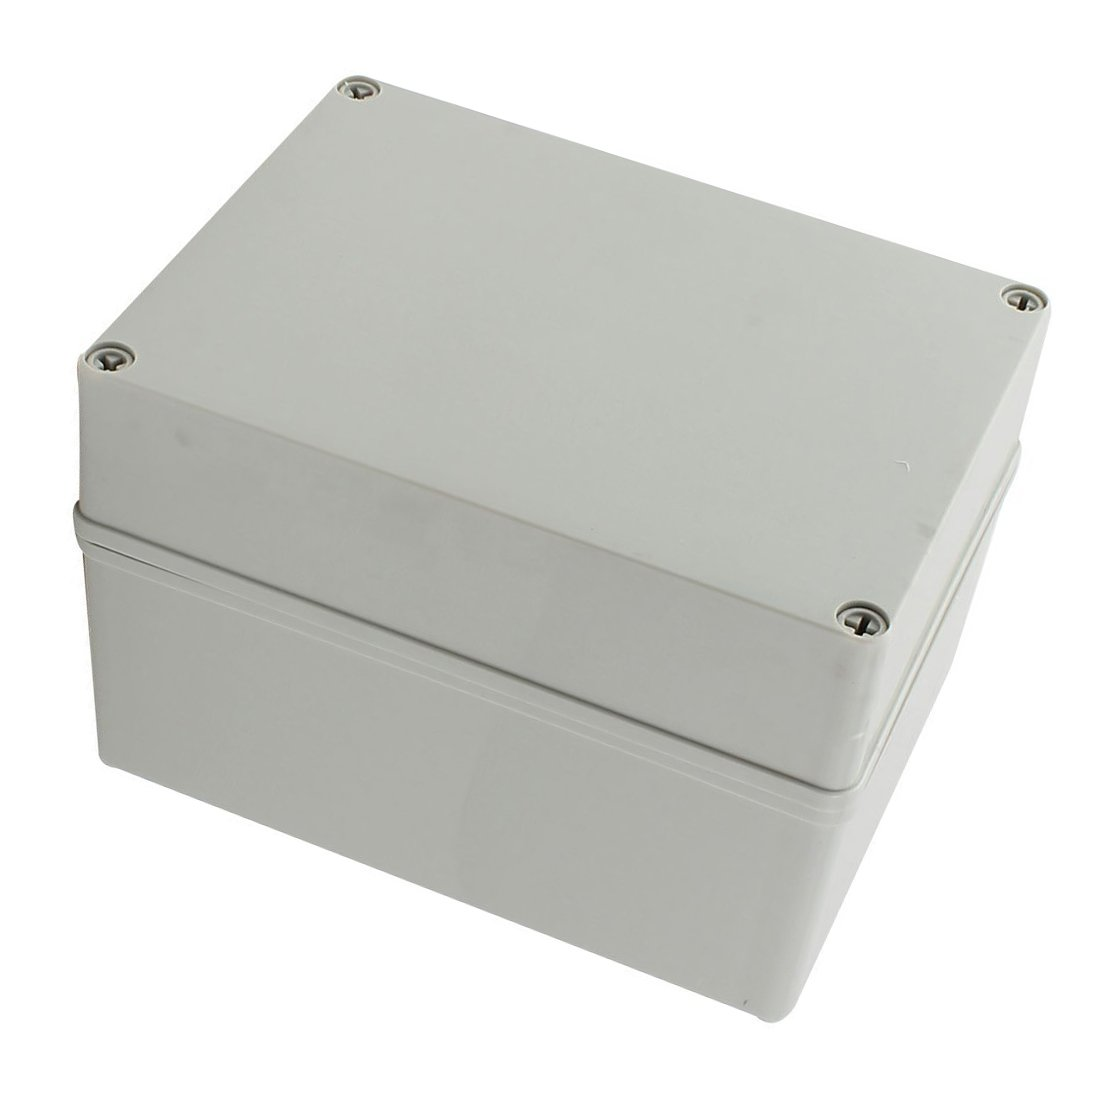 110 x 80 x 70mm YXQ 4.3 x 3.1 x 2.8 inches Electrical Project Case Junction Box IP65 Waterproof ABS DIY Power Outdoor Enclosure Gray